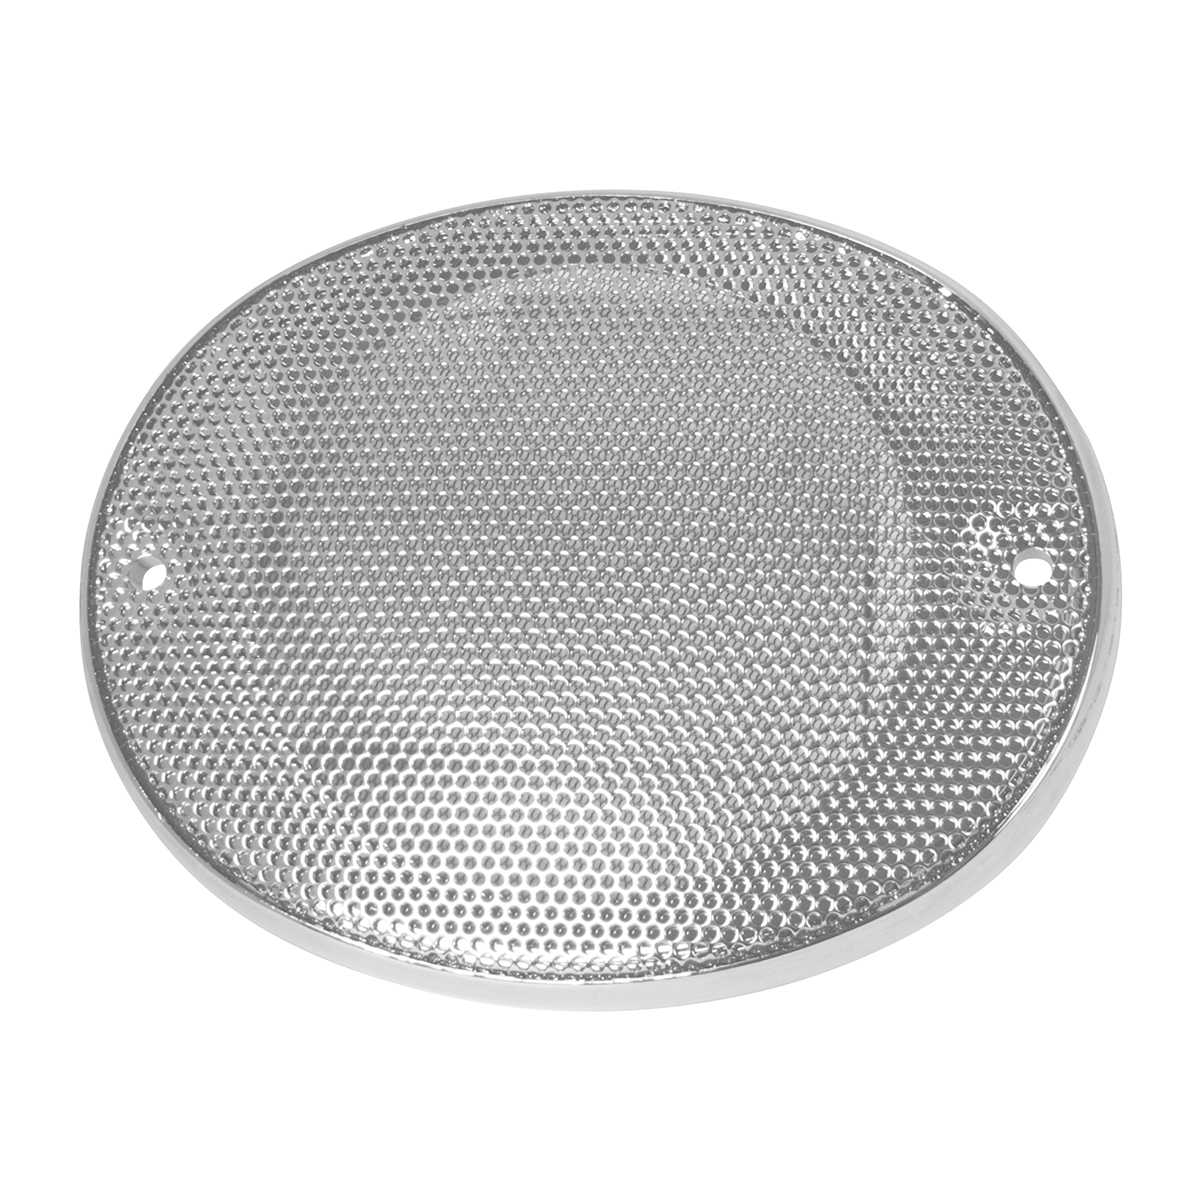 52024 Exterior Oval CB Speaker Cover for Peterbilt & Kenworth